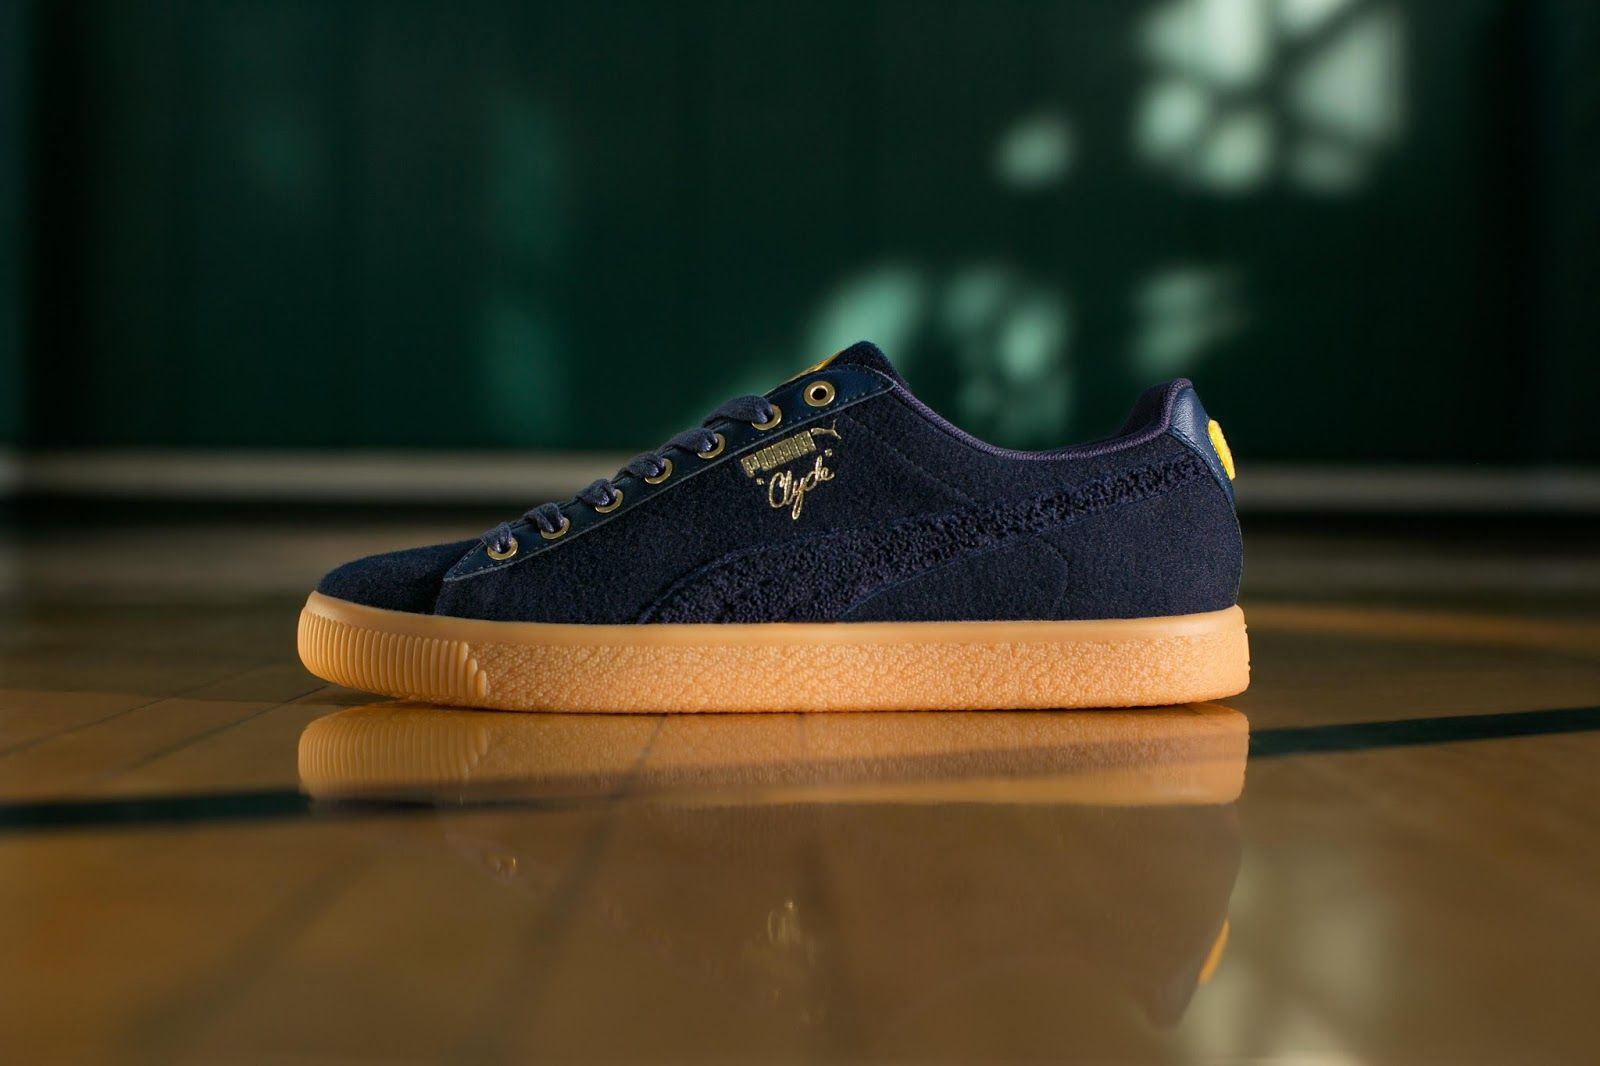 01955562f5dbd3 ... Legacy Collection  PUMA has unveiled two capsule collections inspired  by the David T. Howard School in Atlanta  PUMA Clyde ...